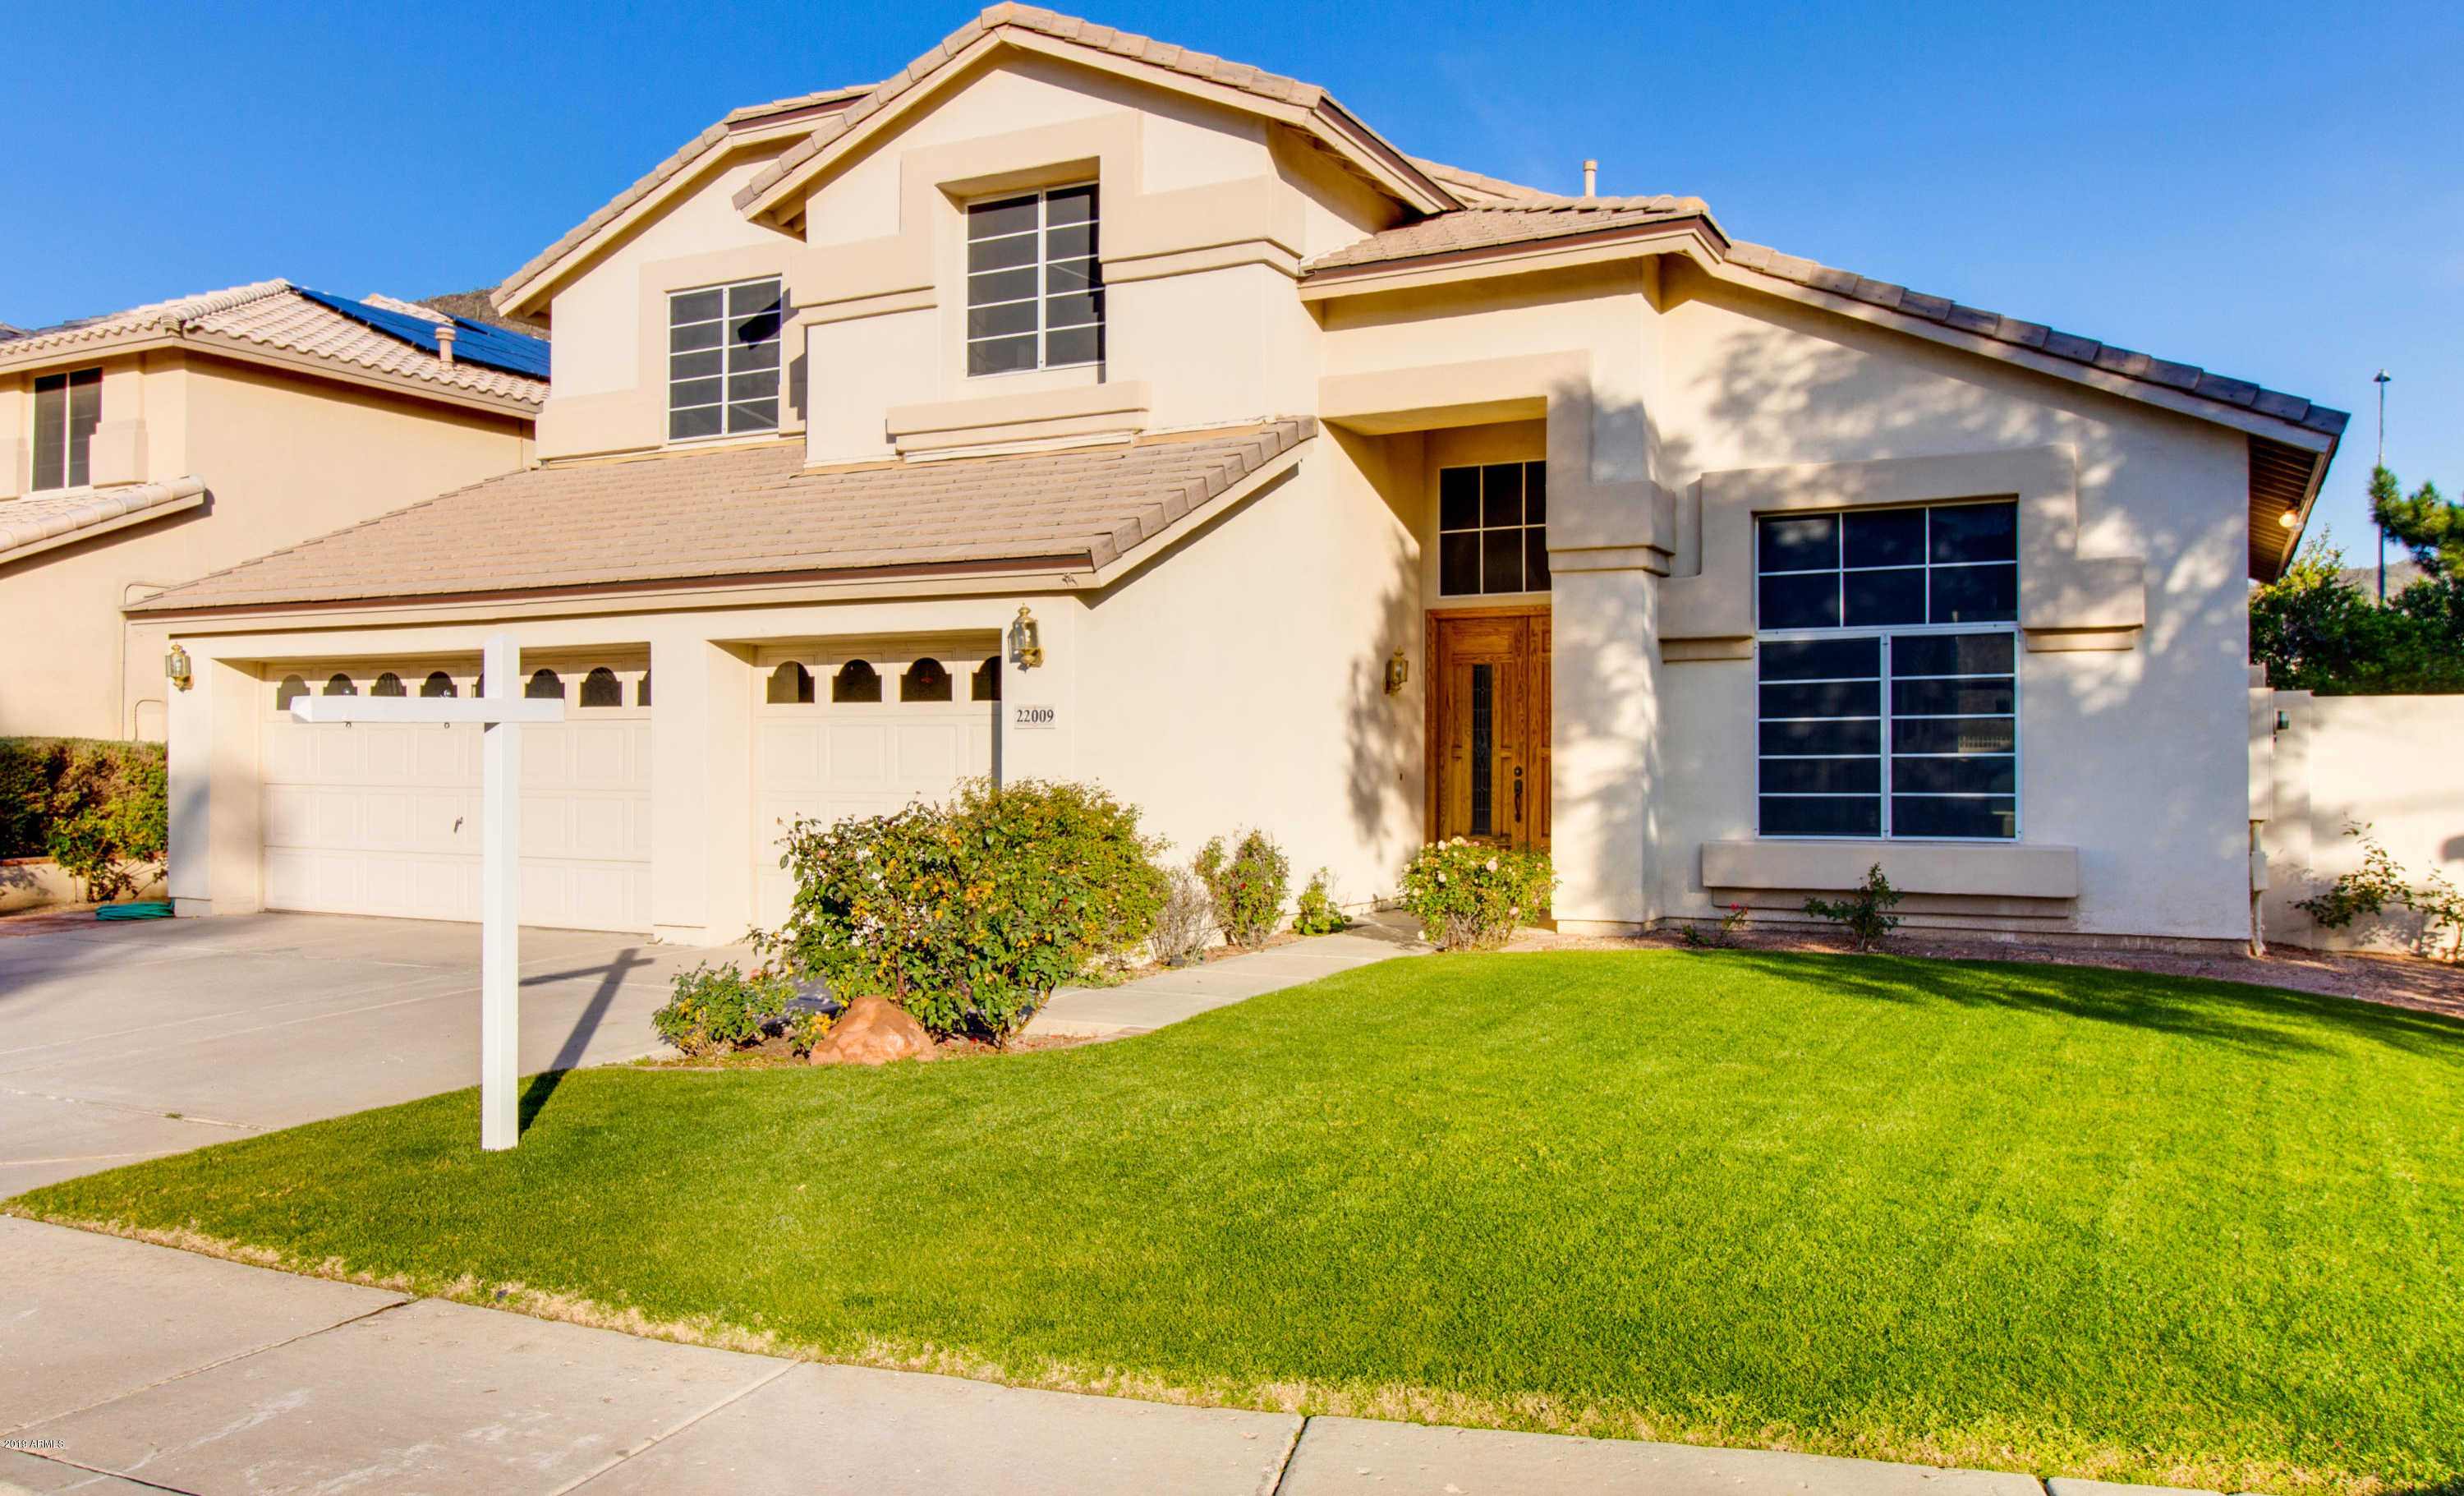 $400,000 - 5Br/3Ba - Home for Sale in Arrowhead Ranch Parcel 2, Glendale